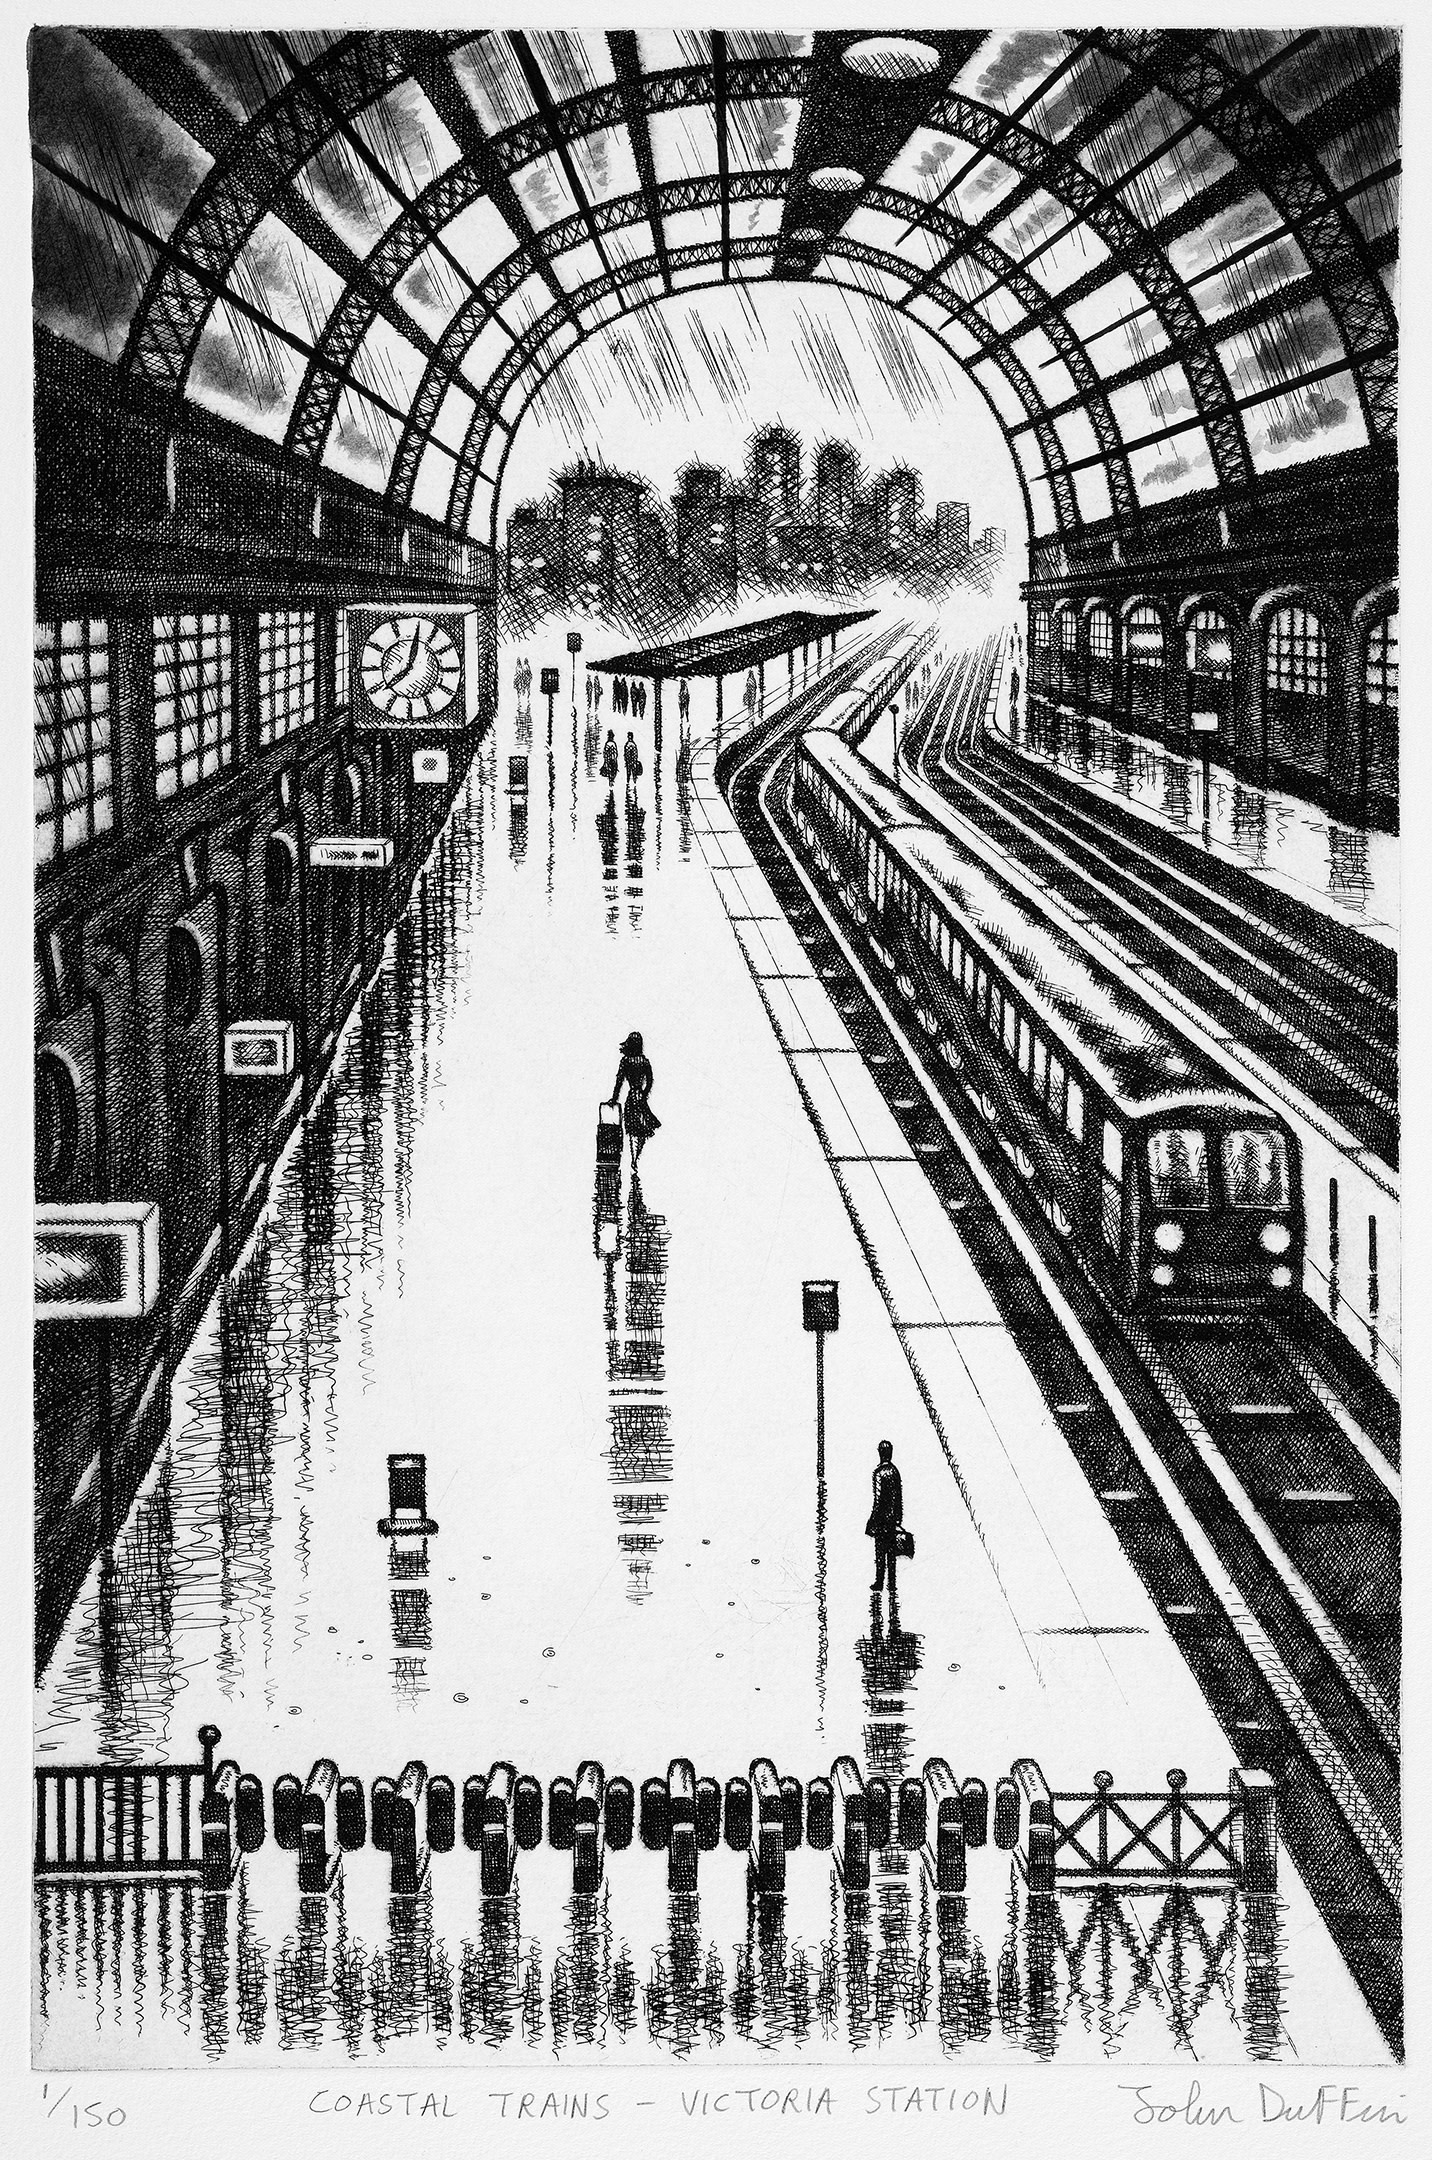 """<span class=""""link fancybox-details-link""""><a href=""""/exhibitions/17/works/image_standalone672/"""">View Detail Page</a></span><p><strong>John Duffin</strong></p><p>Coastal Trains - Victoria Station</p><p>etching, ed of 150</p><p>60 x 40cm</p><p>£295 framed</p><p>£195 unframed</p><p></p>"""